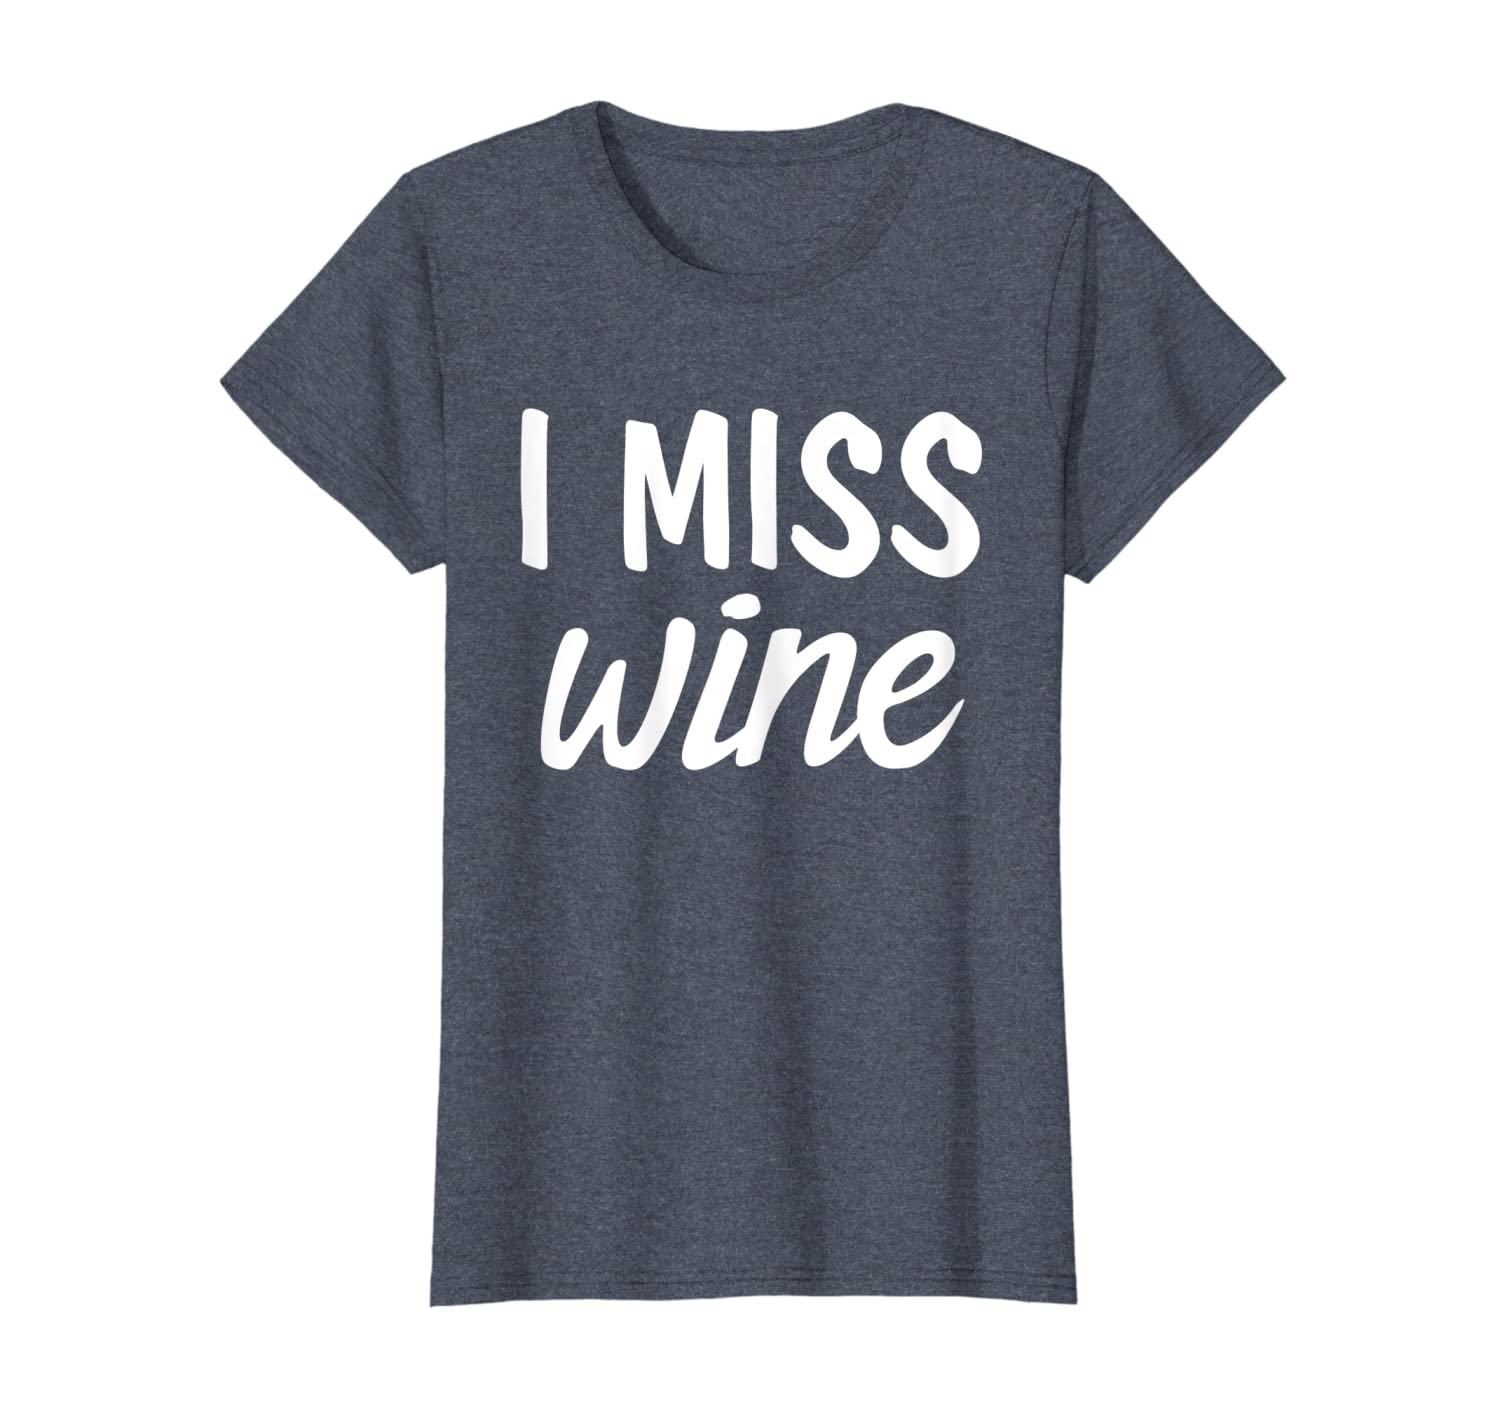 720d1f11 Amazon.com: I Miss Wine | Funny Pregnant Maternity Women Tee Shirt: Clothing